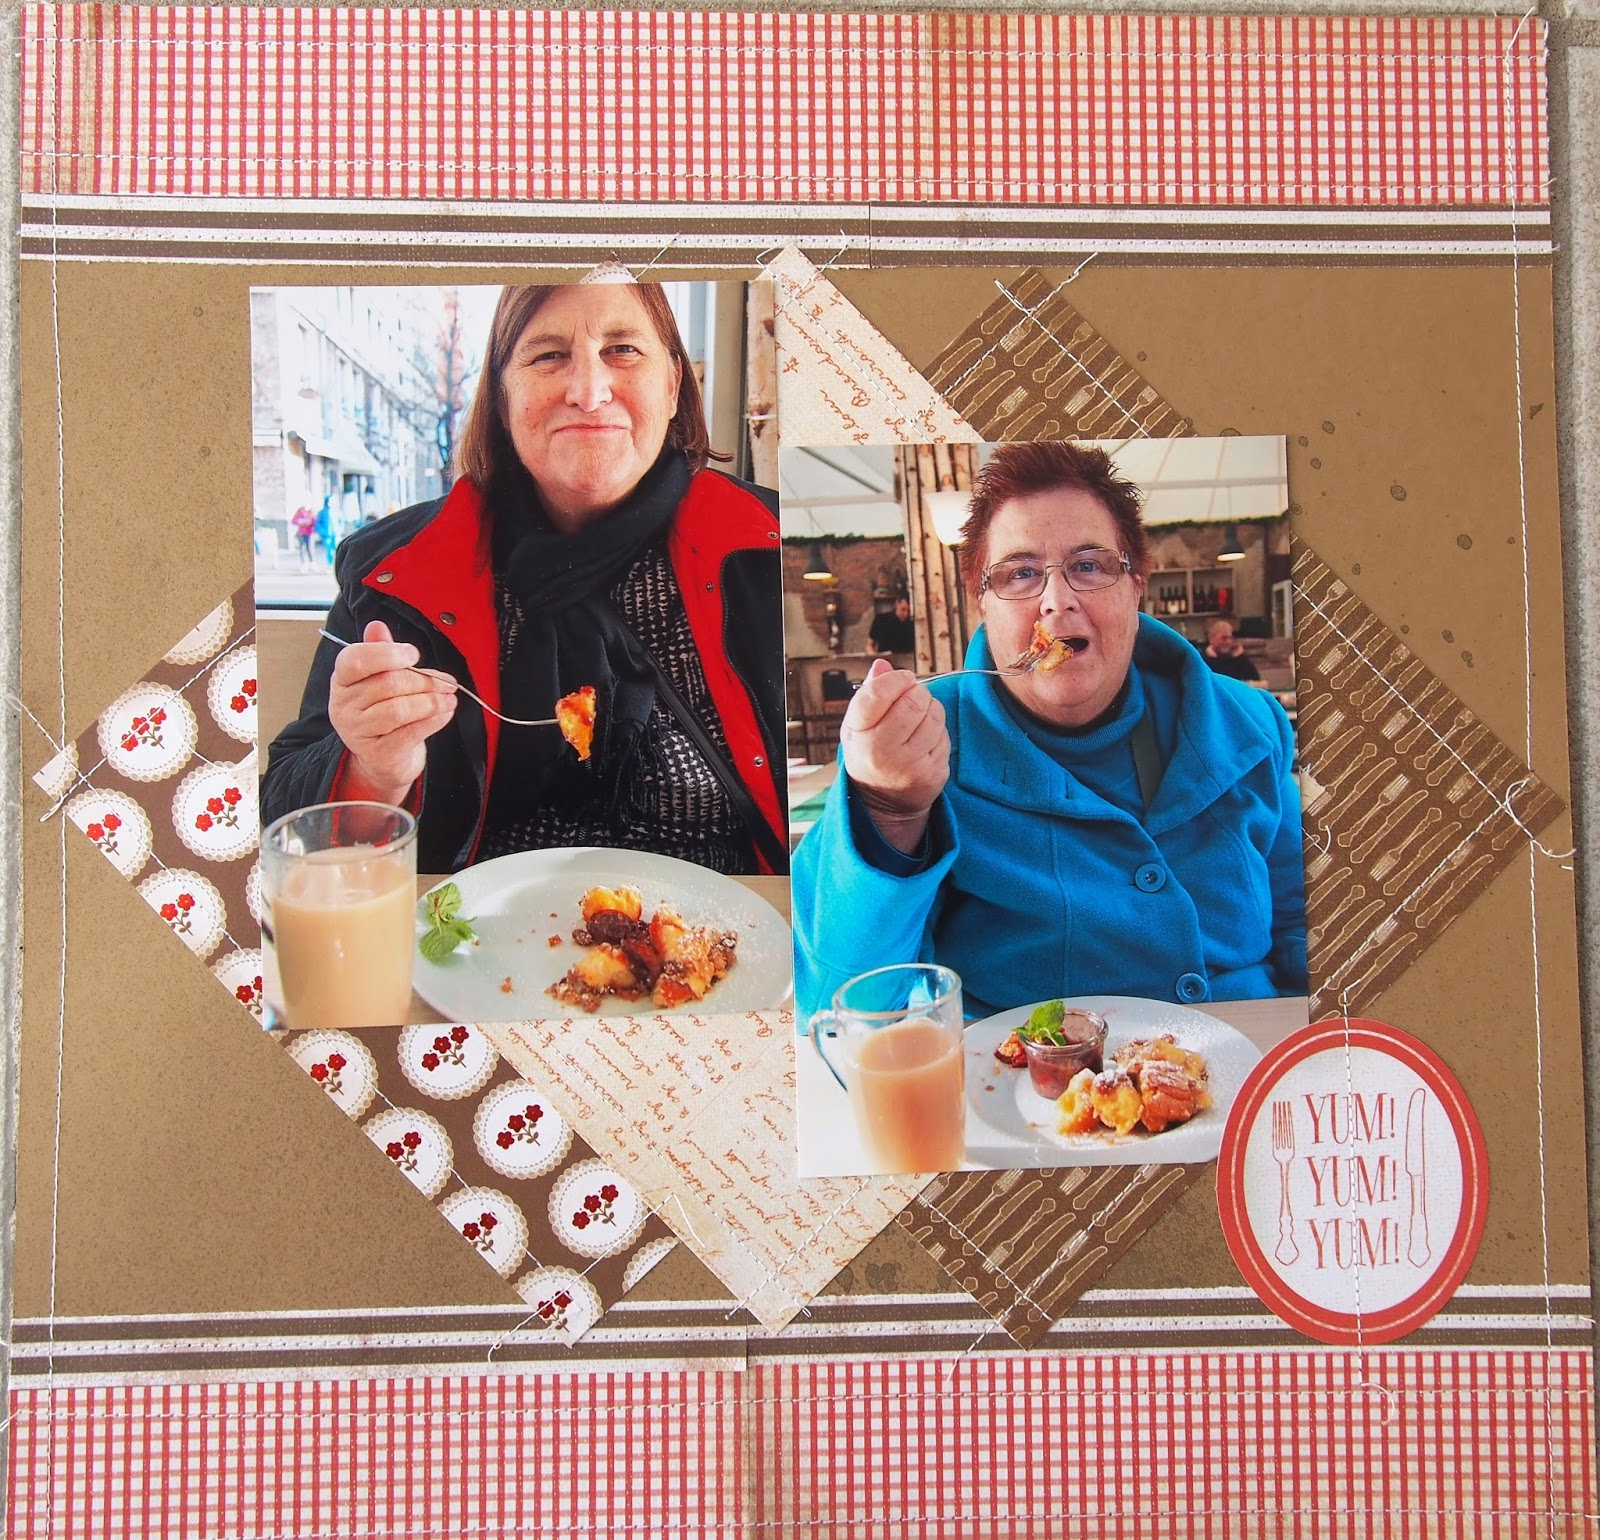 Scrapbook ideas sister - This Is A Layout I Completed And It Shows My Sister And I Enjoying Pancakes With Raspberry Sauce In Berlin Germany And Yes We Are Still Eating Our Way